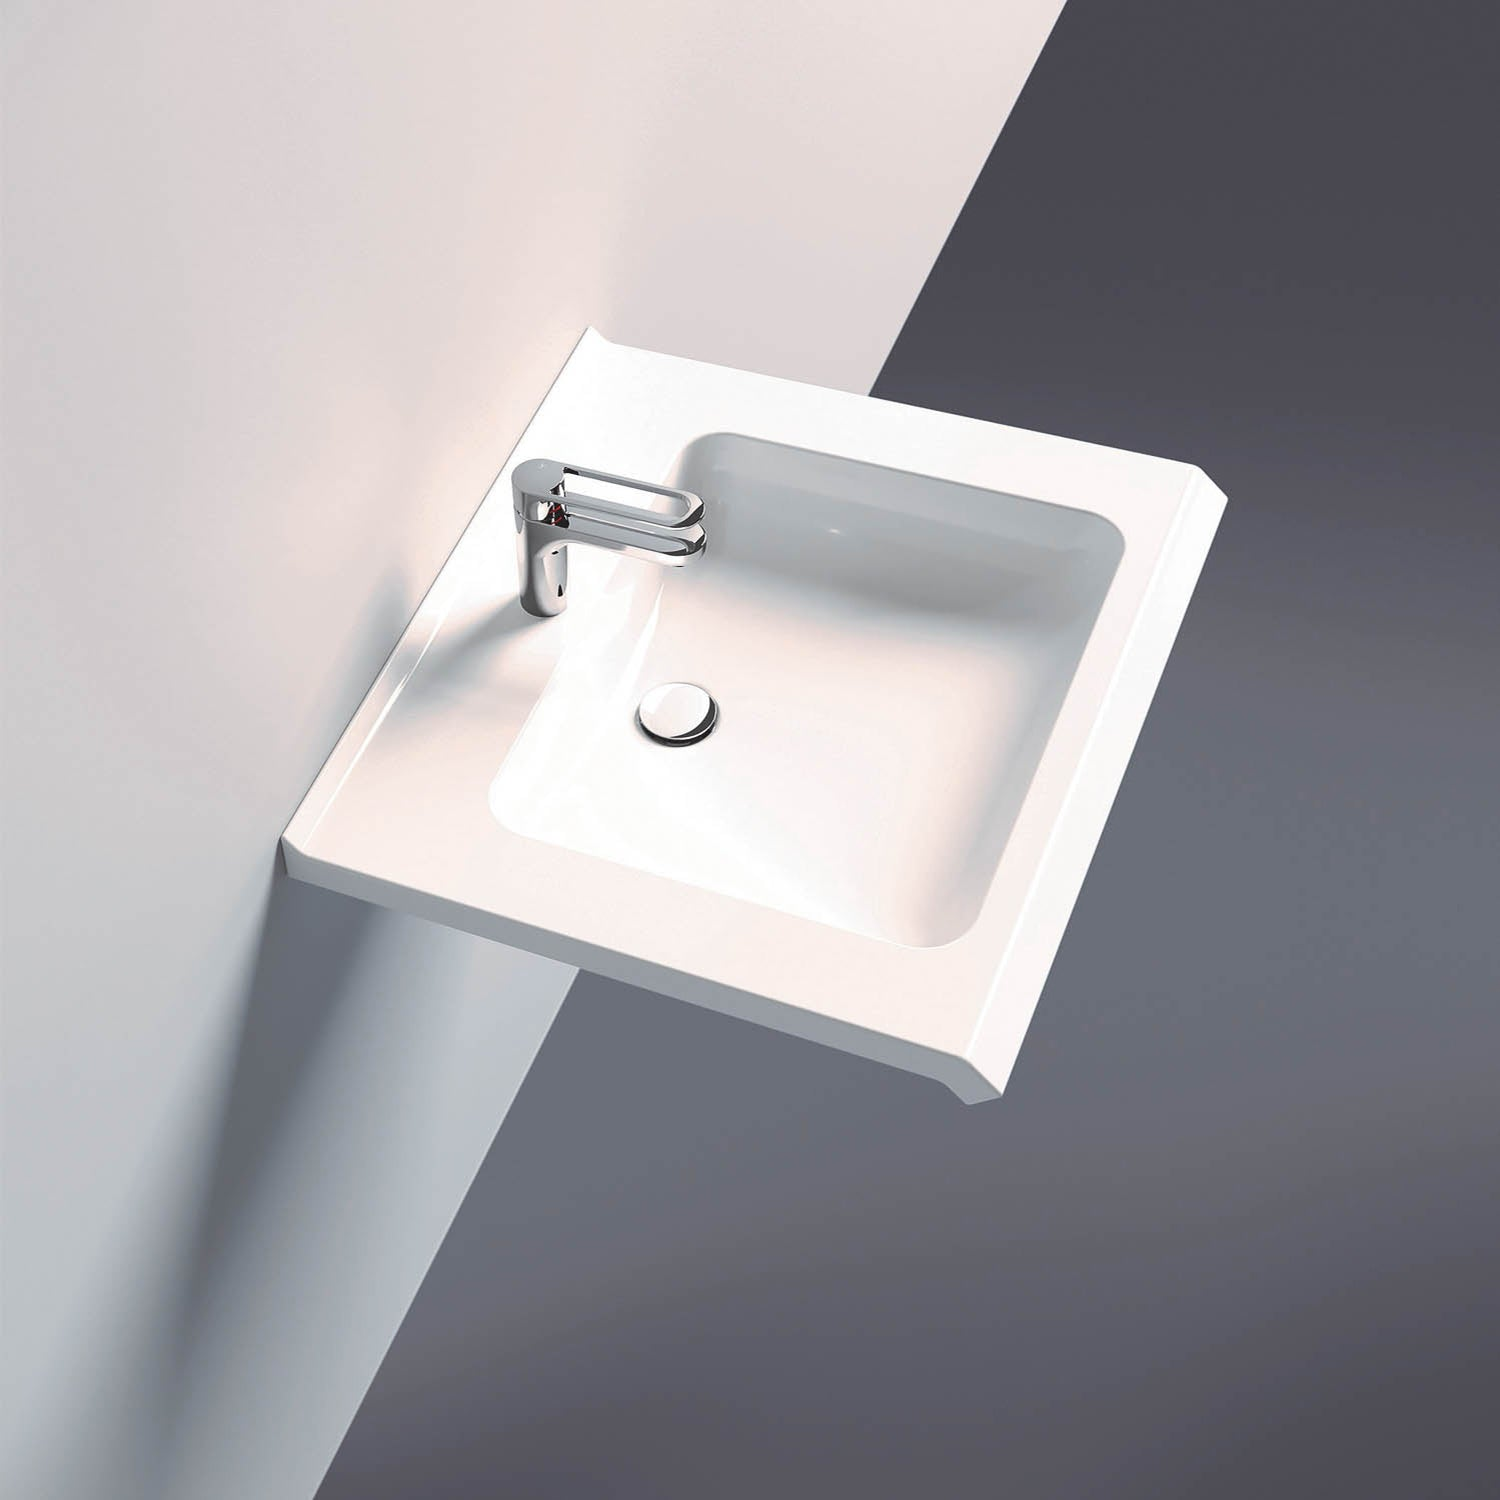 650mm SurfaceHold Wall Hung Basin with no tap hole lifestyle image